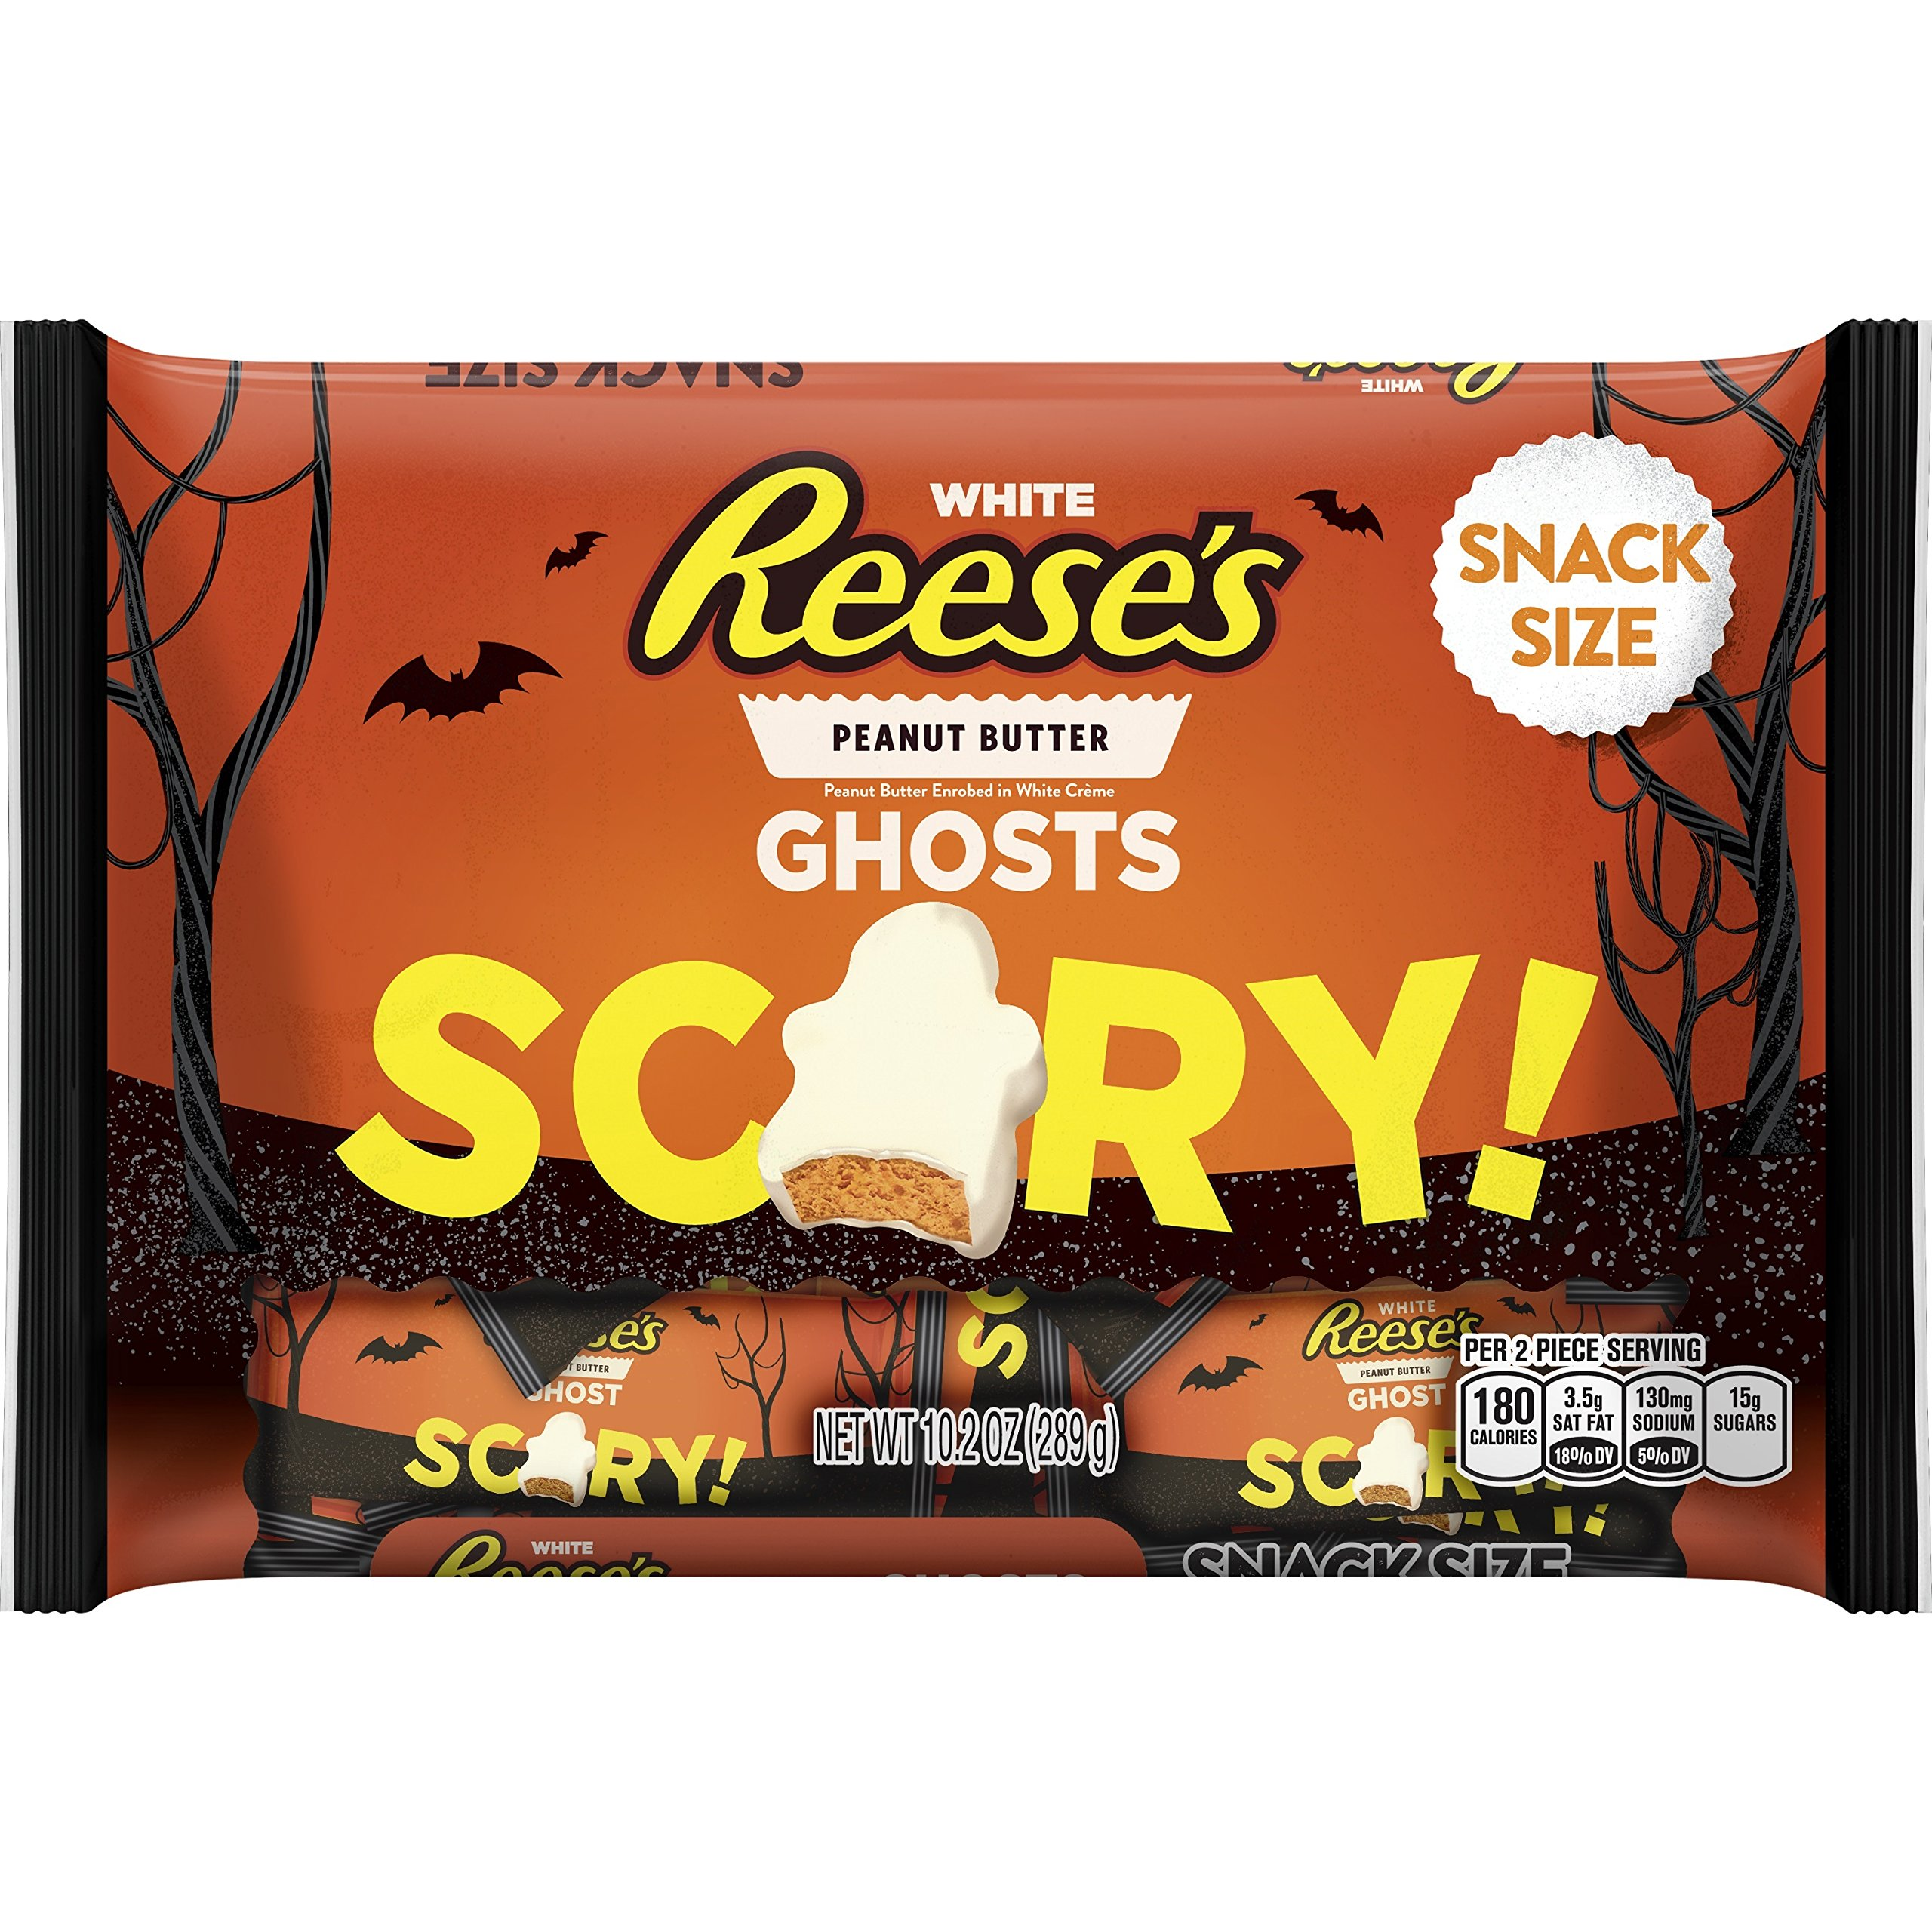 REESE'S White Peanut Butter Snack Size Ghosts 10.2 Ounce